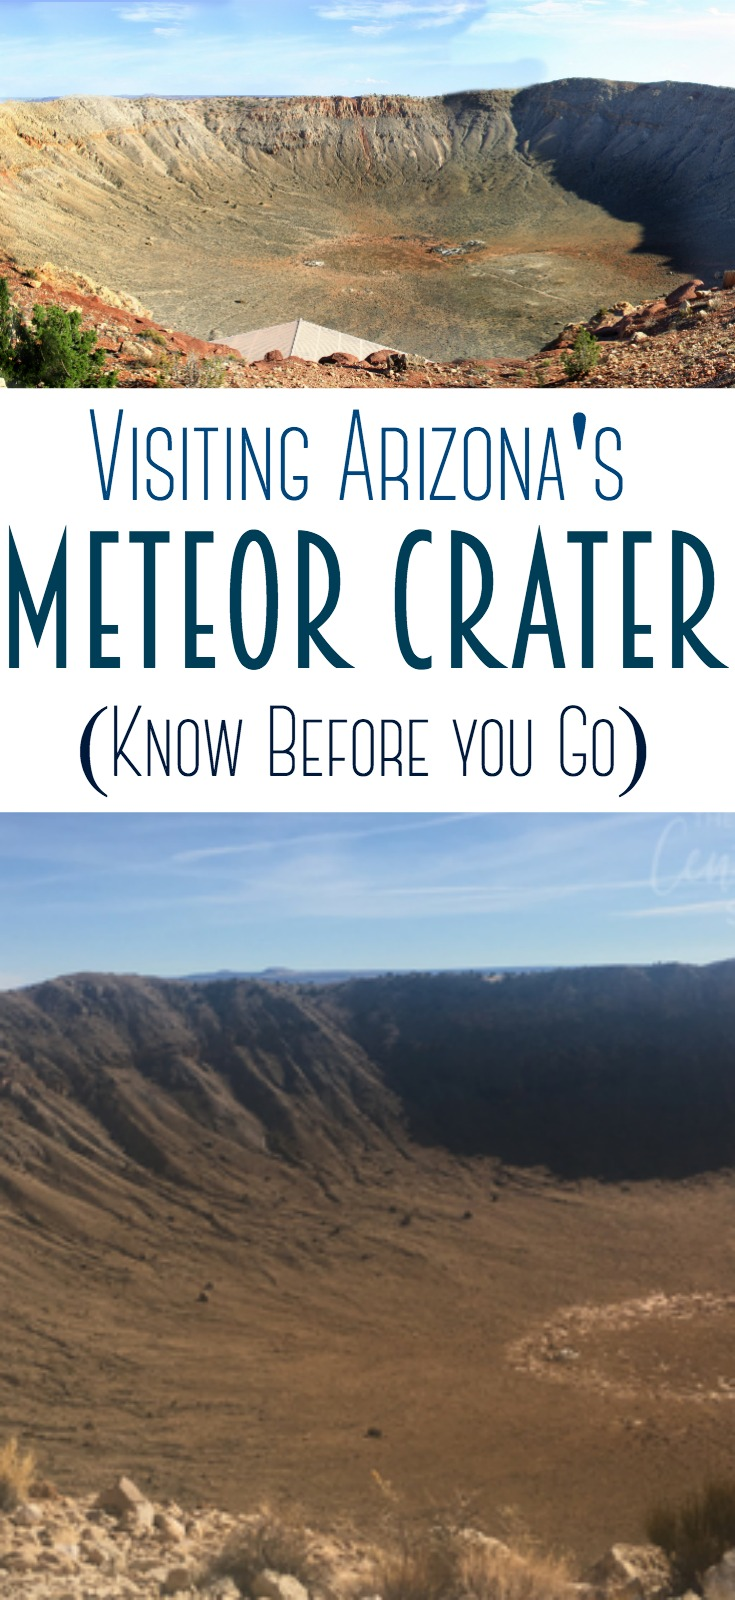 Arizona's Meteor Crater - Over 50,000 years ago, Northern Arizona had a meteorite impact that created a crater 3,900 feet in diameter and 560 feet deep. This is truly an amazing sight! #arizona #meteorcrater #roadtrip #winslow #history #crater #meteor